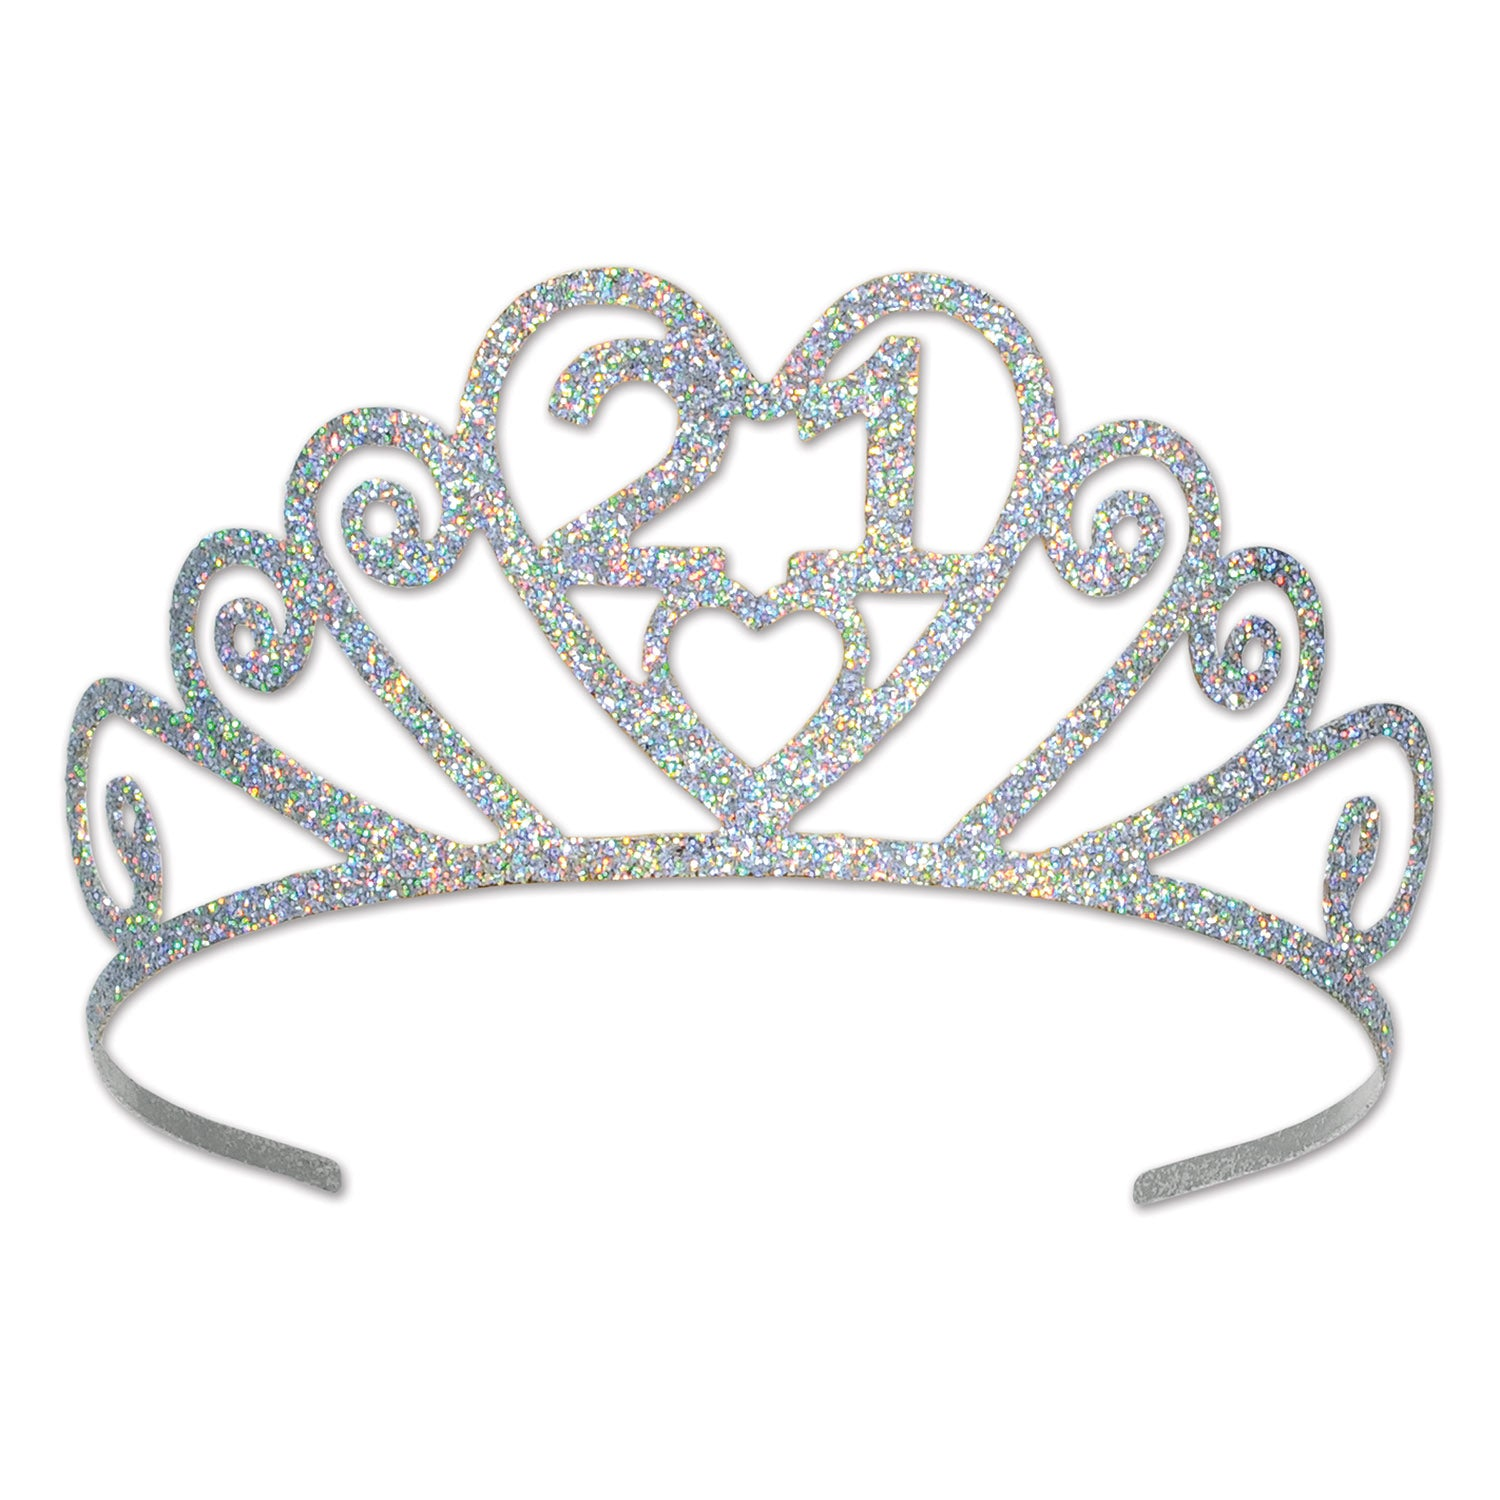 Glittered Metal 21 Tiara by Beistle - 21st Birthday Theme Decorations